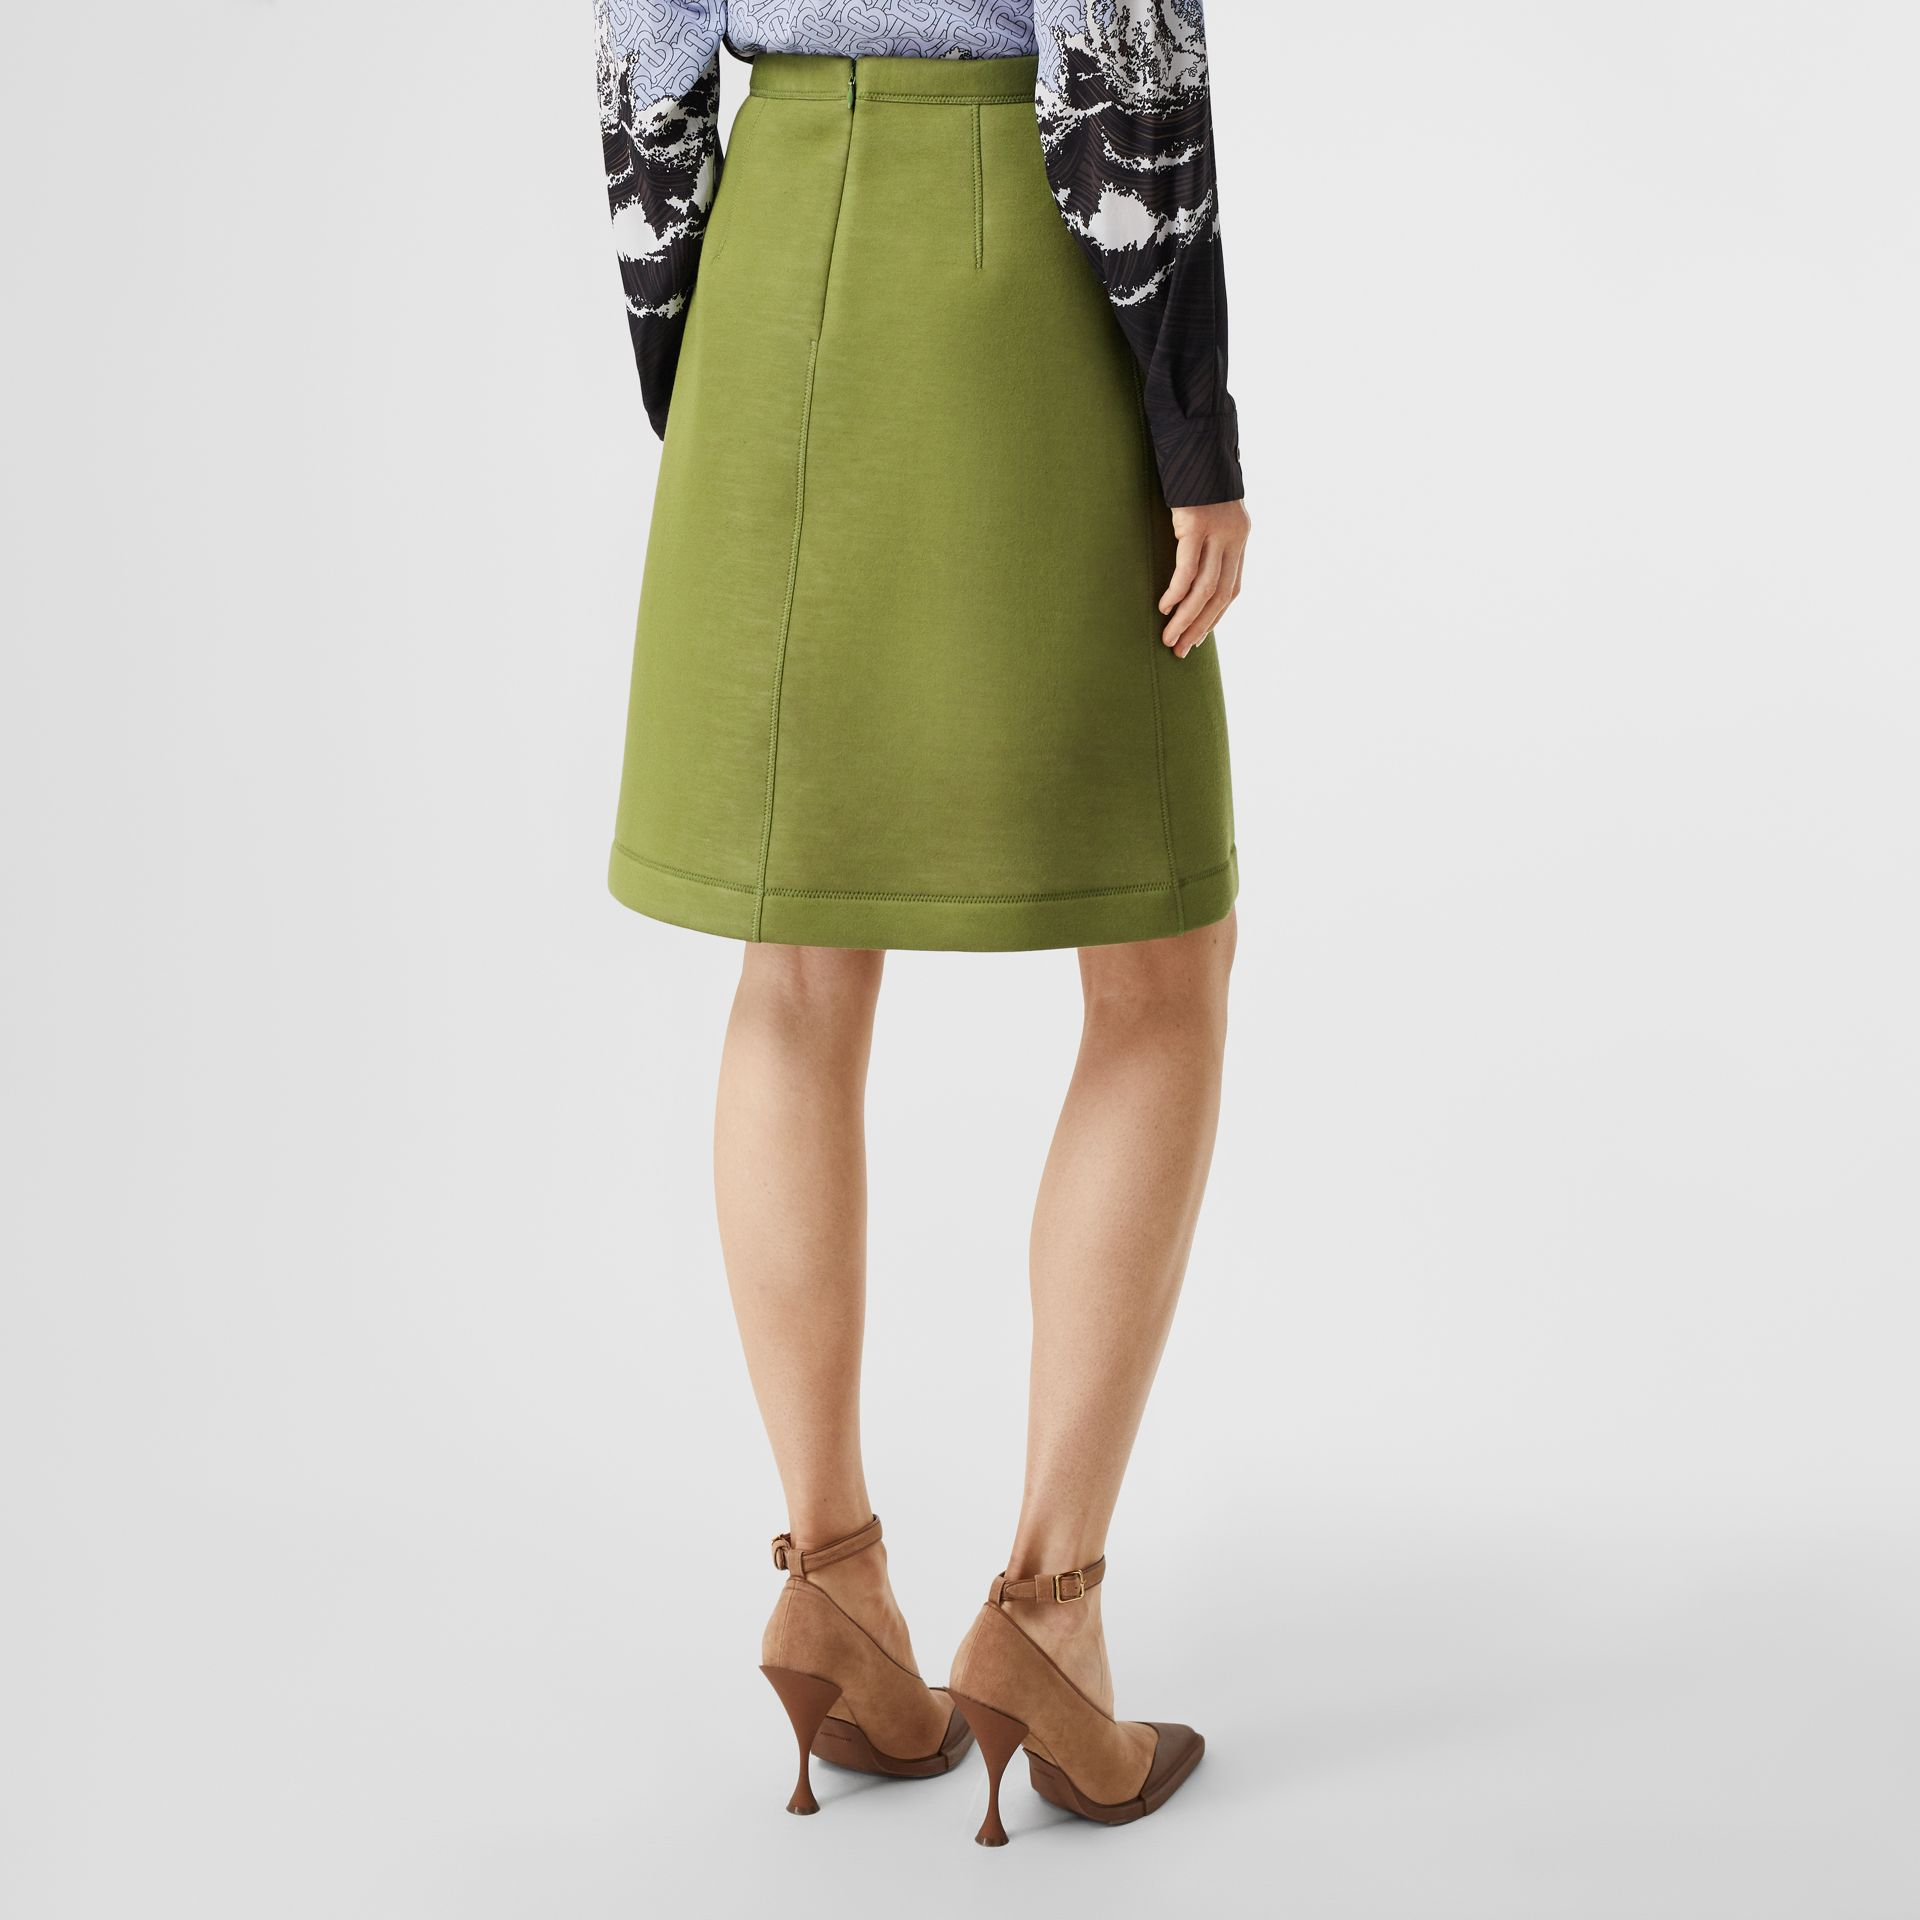 Double-faced Neoprene Skirt in Cedar Green - Women | Burberry - gallery image 2